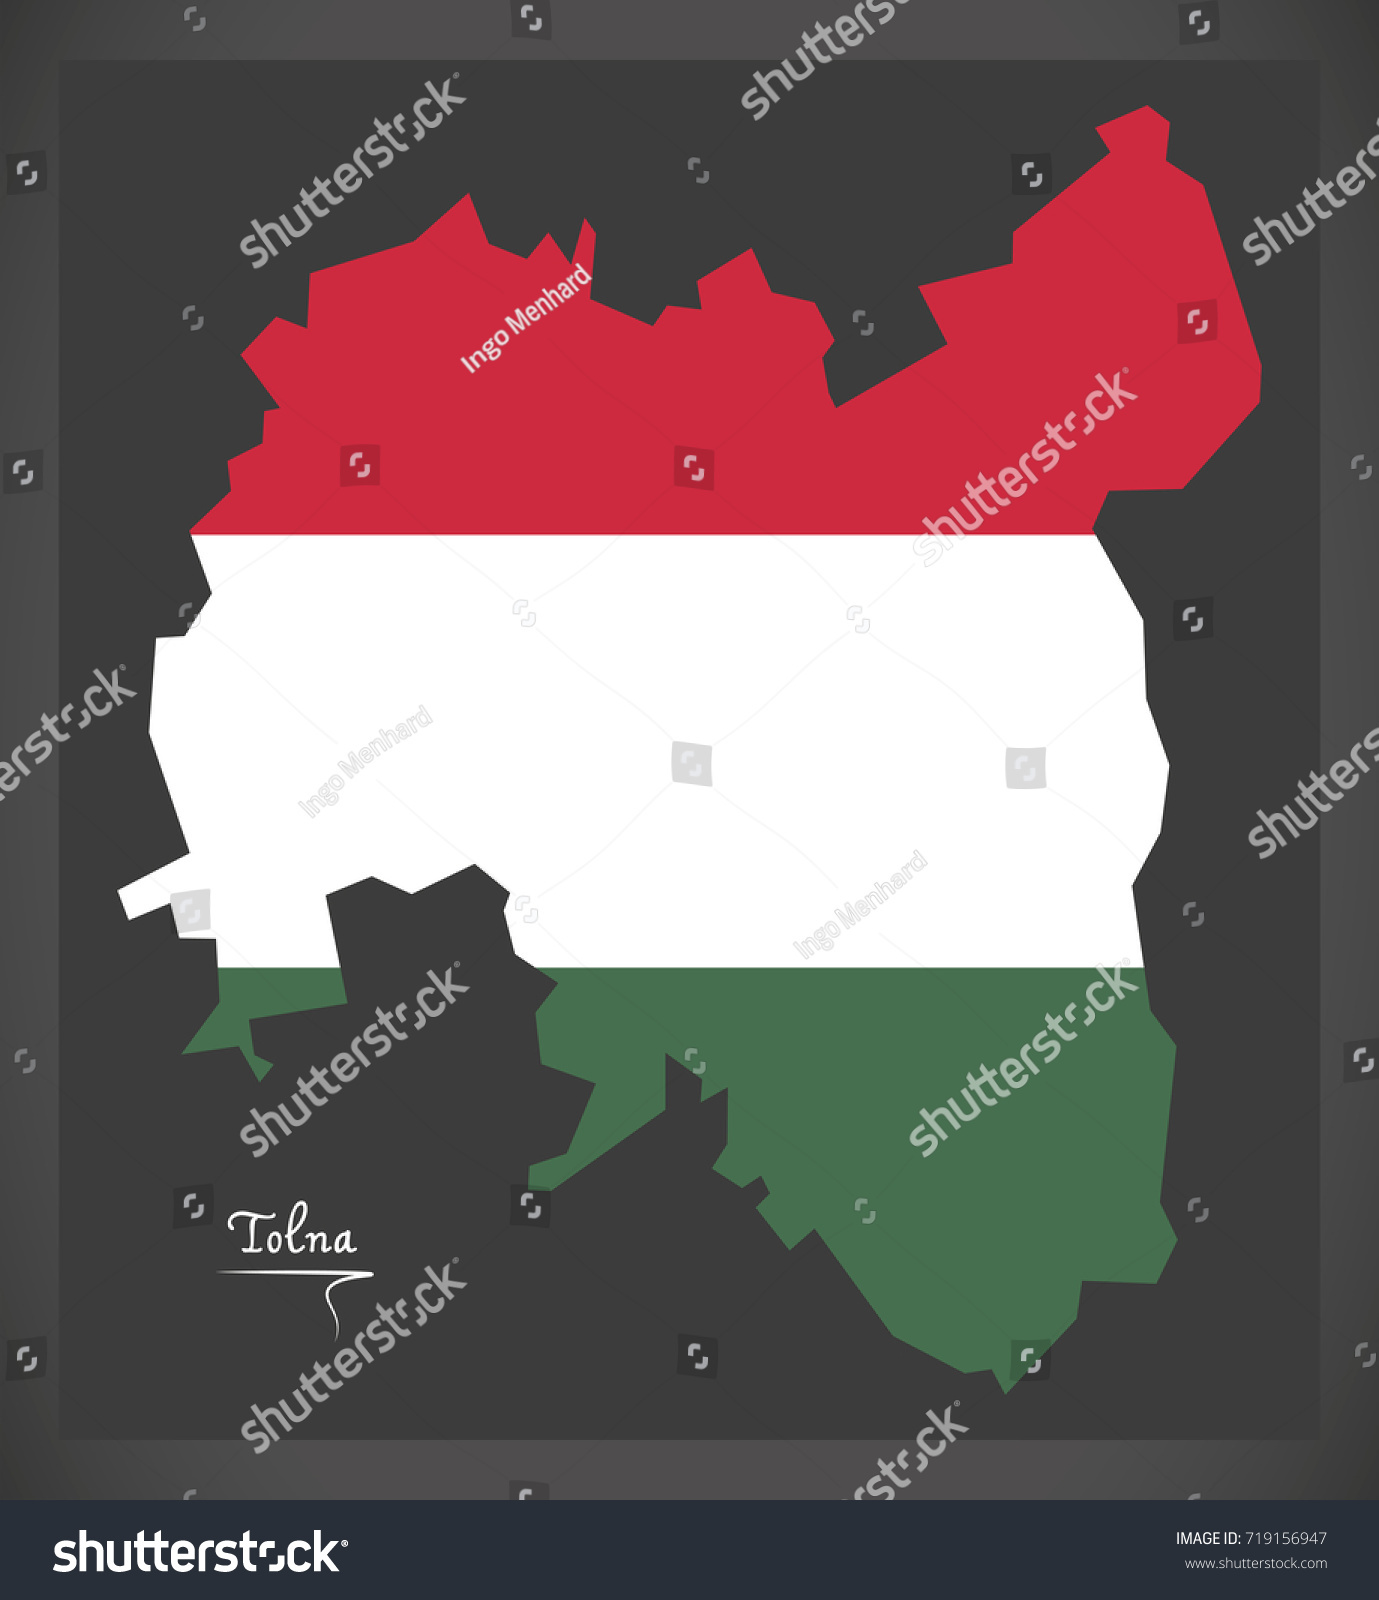 tolna map hungary hungarian national flag stock vector 719156947